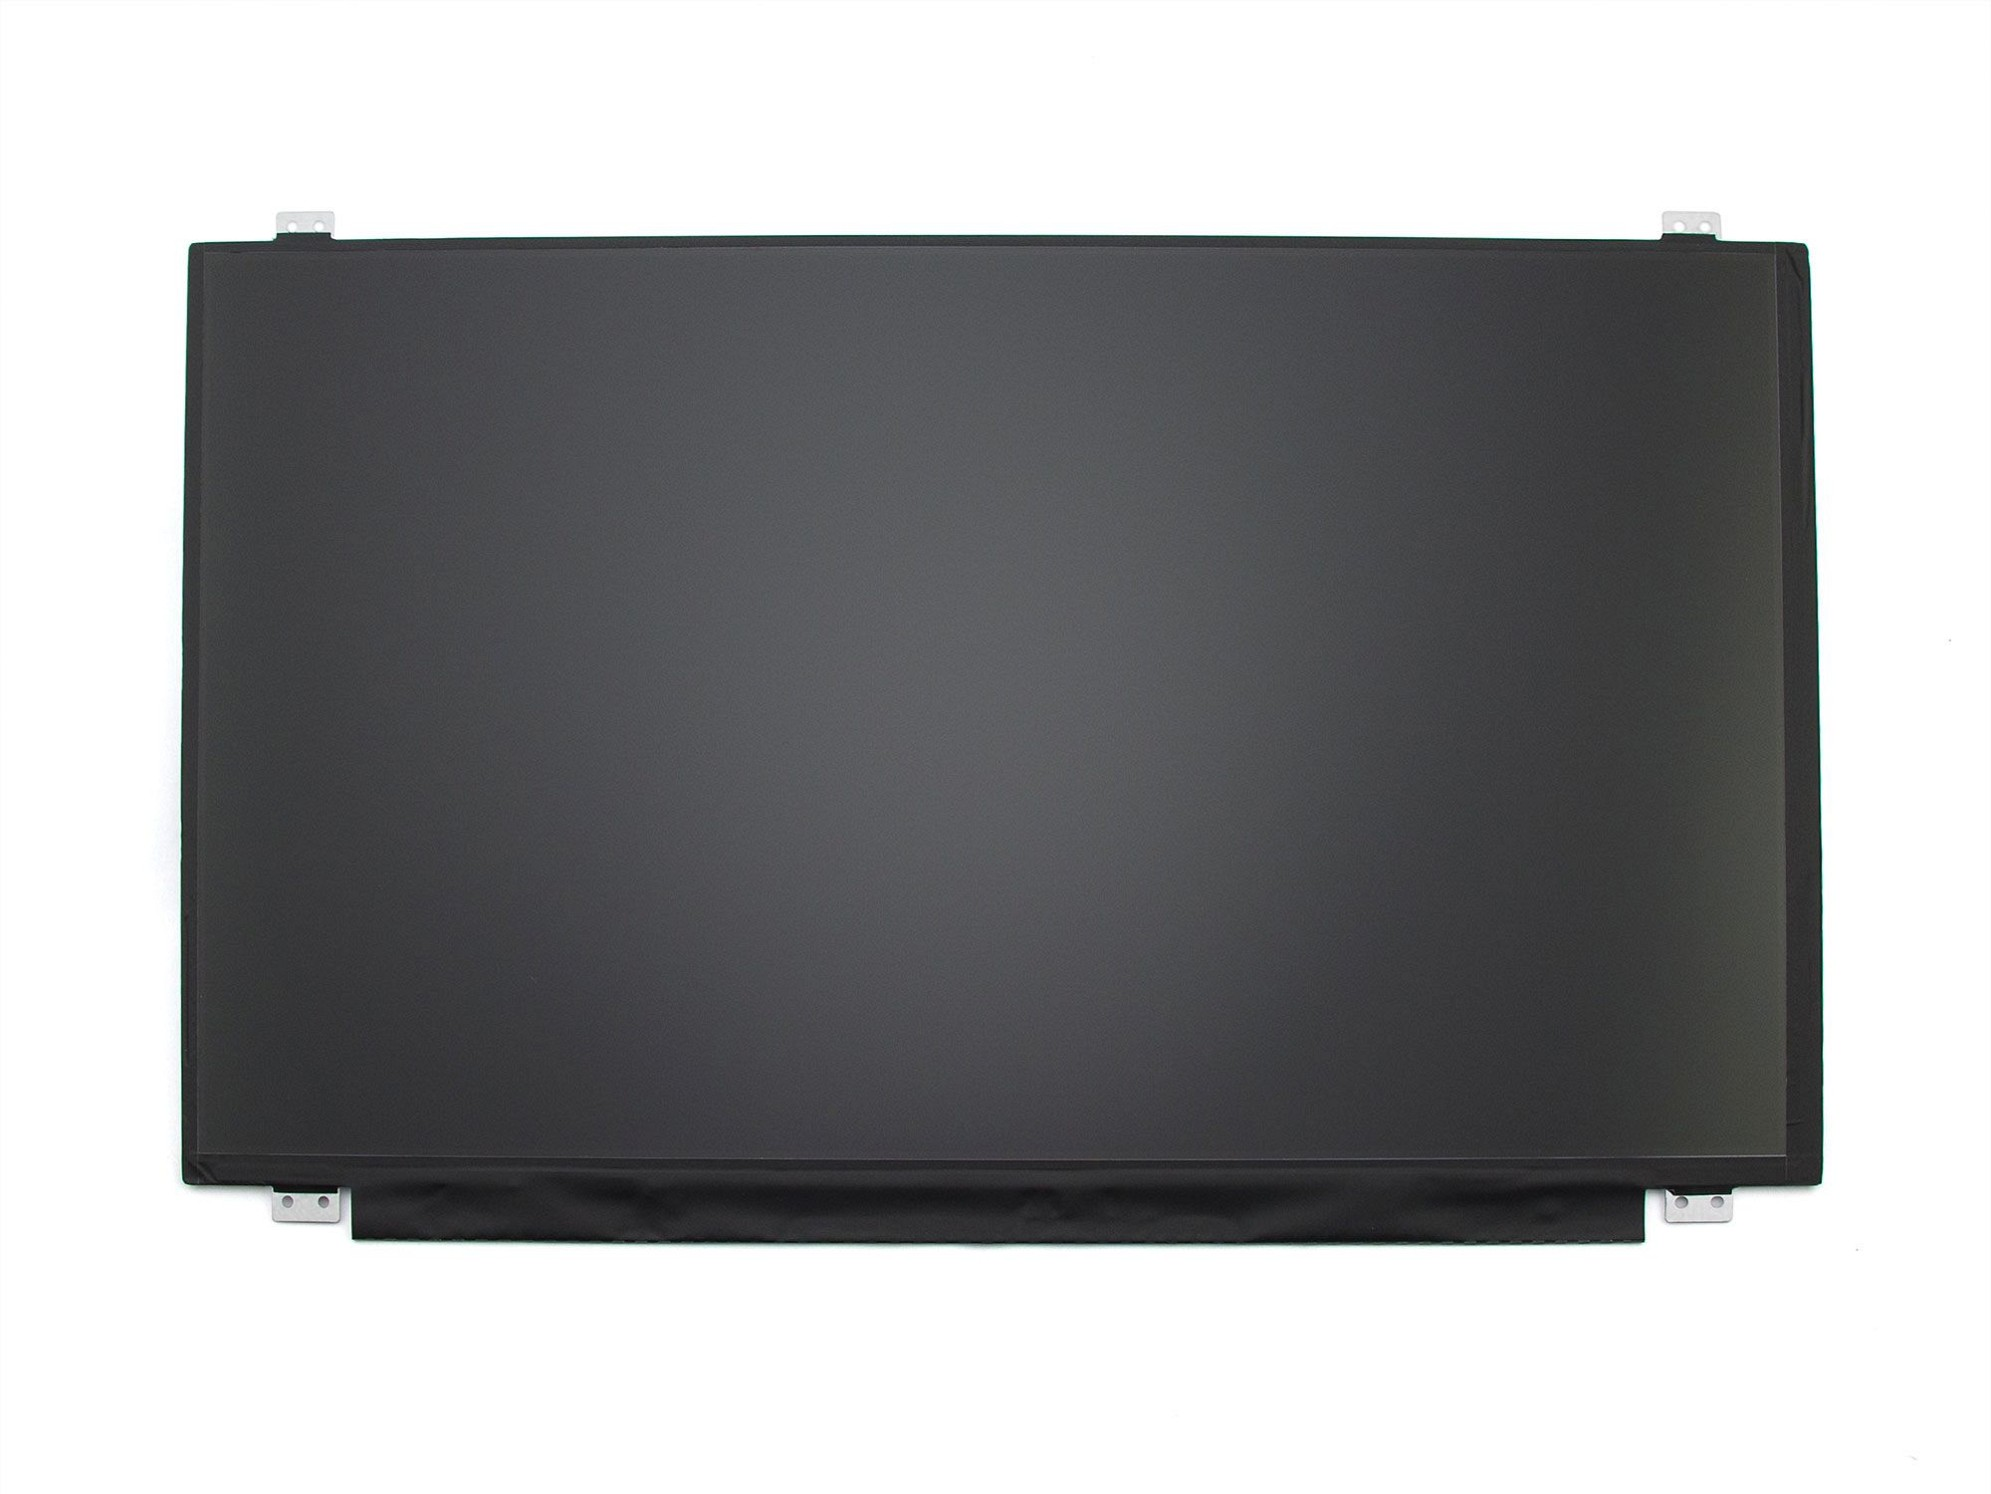 HP 011 IPS LED Display FHD matt slimline